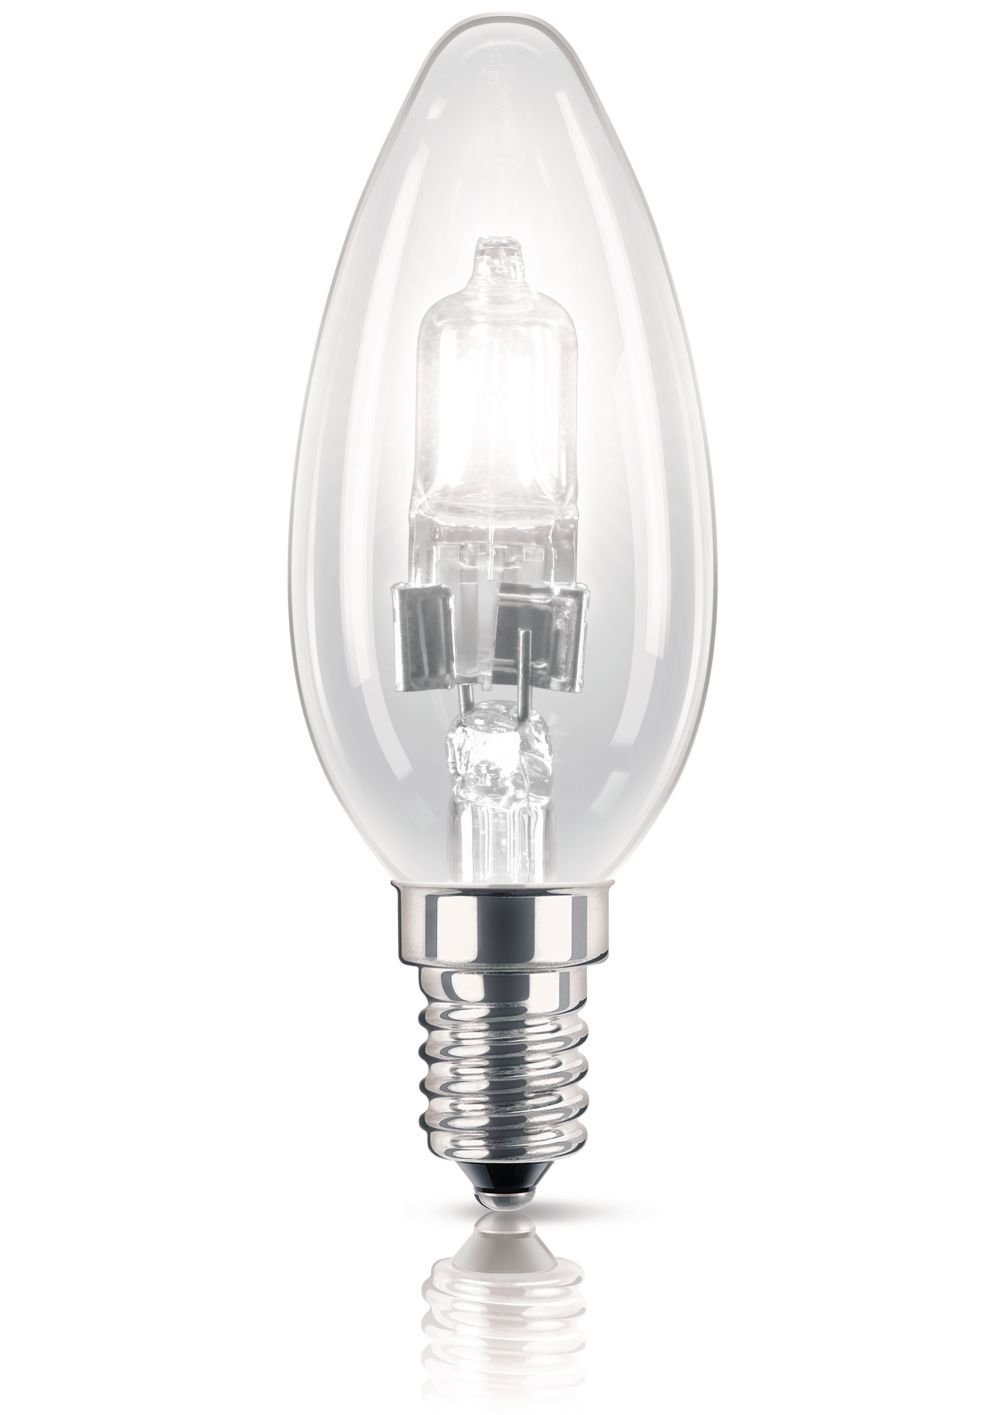 Philips Halogen Classic B35 E14 Small Edison Screw Light Bulb, 42 W (55 W Equivalent, Dimmable, 2000 Hours) - Warm White Philips Consumer Lighting 925646345505